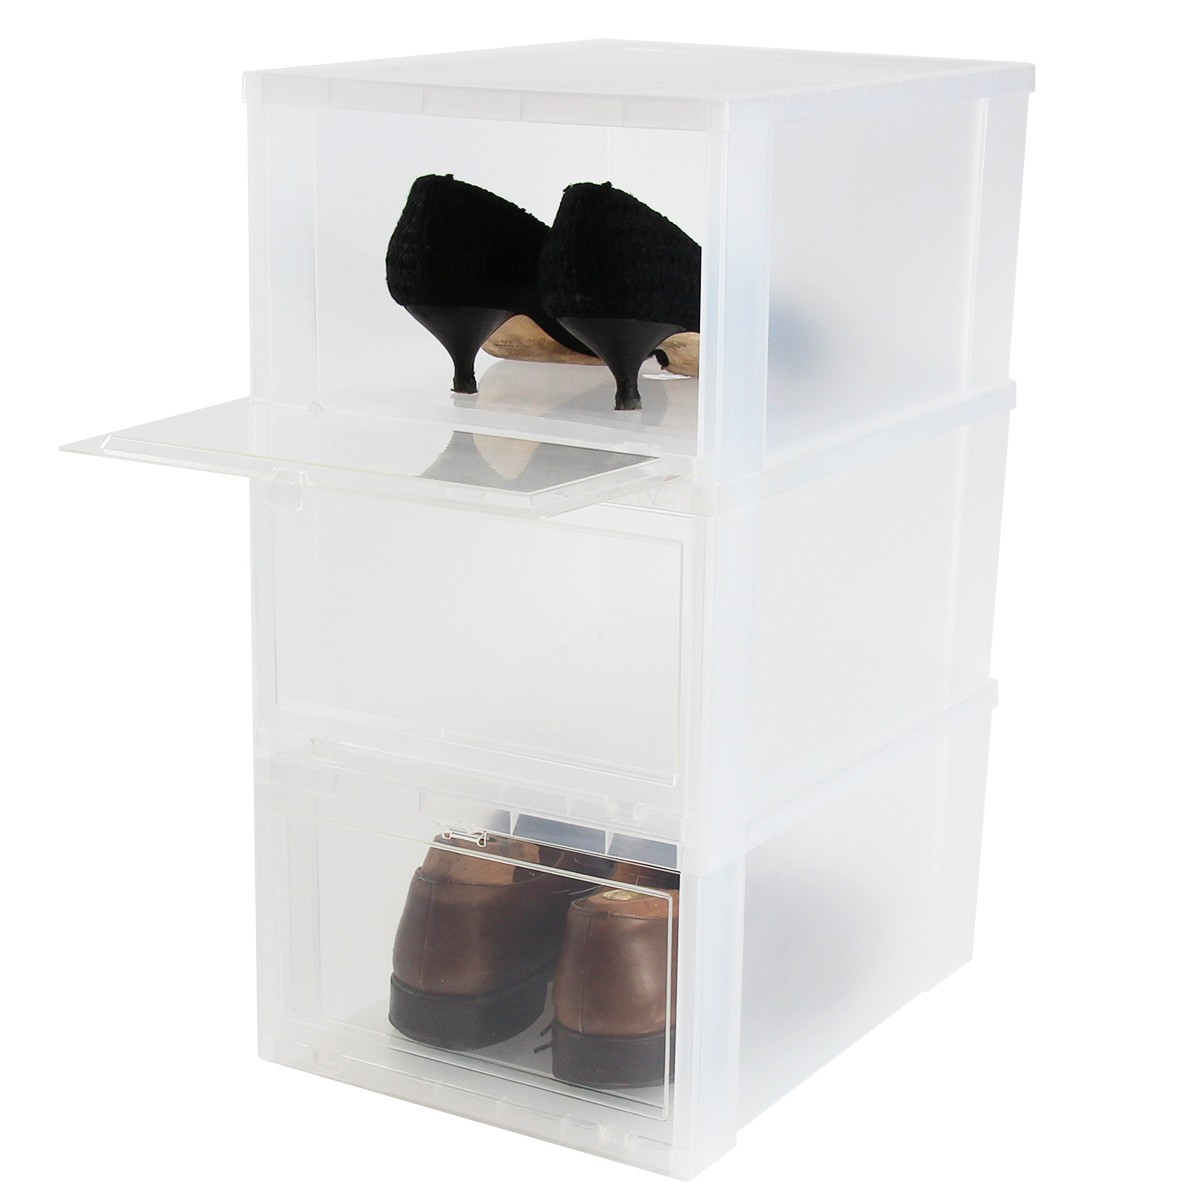 bo te chaussures en plastique rangement chaussures. Black Bedroom Furniture Sets. Home Design Ideas